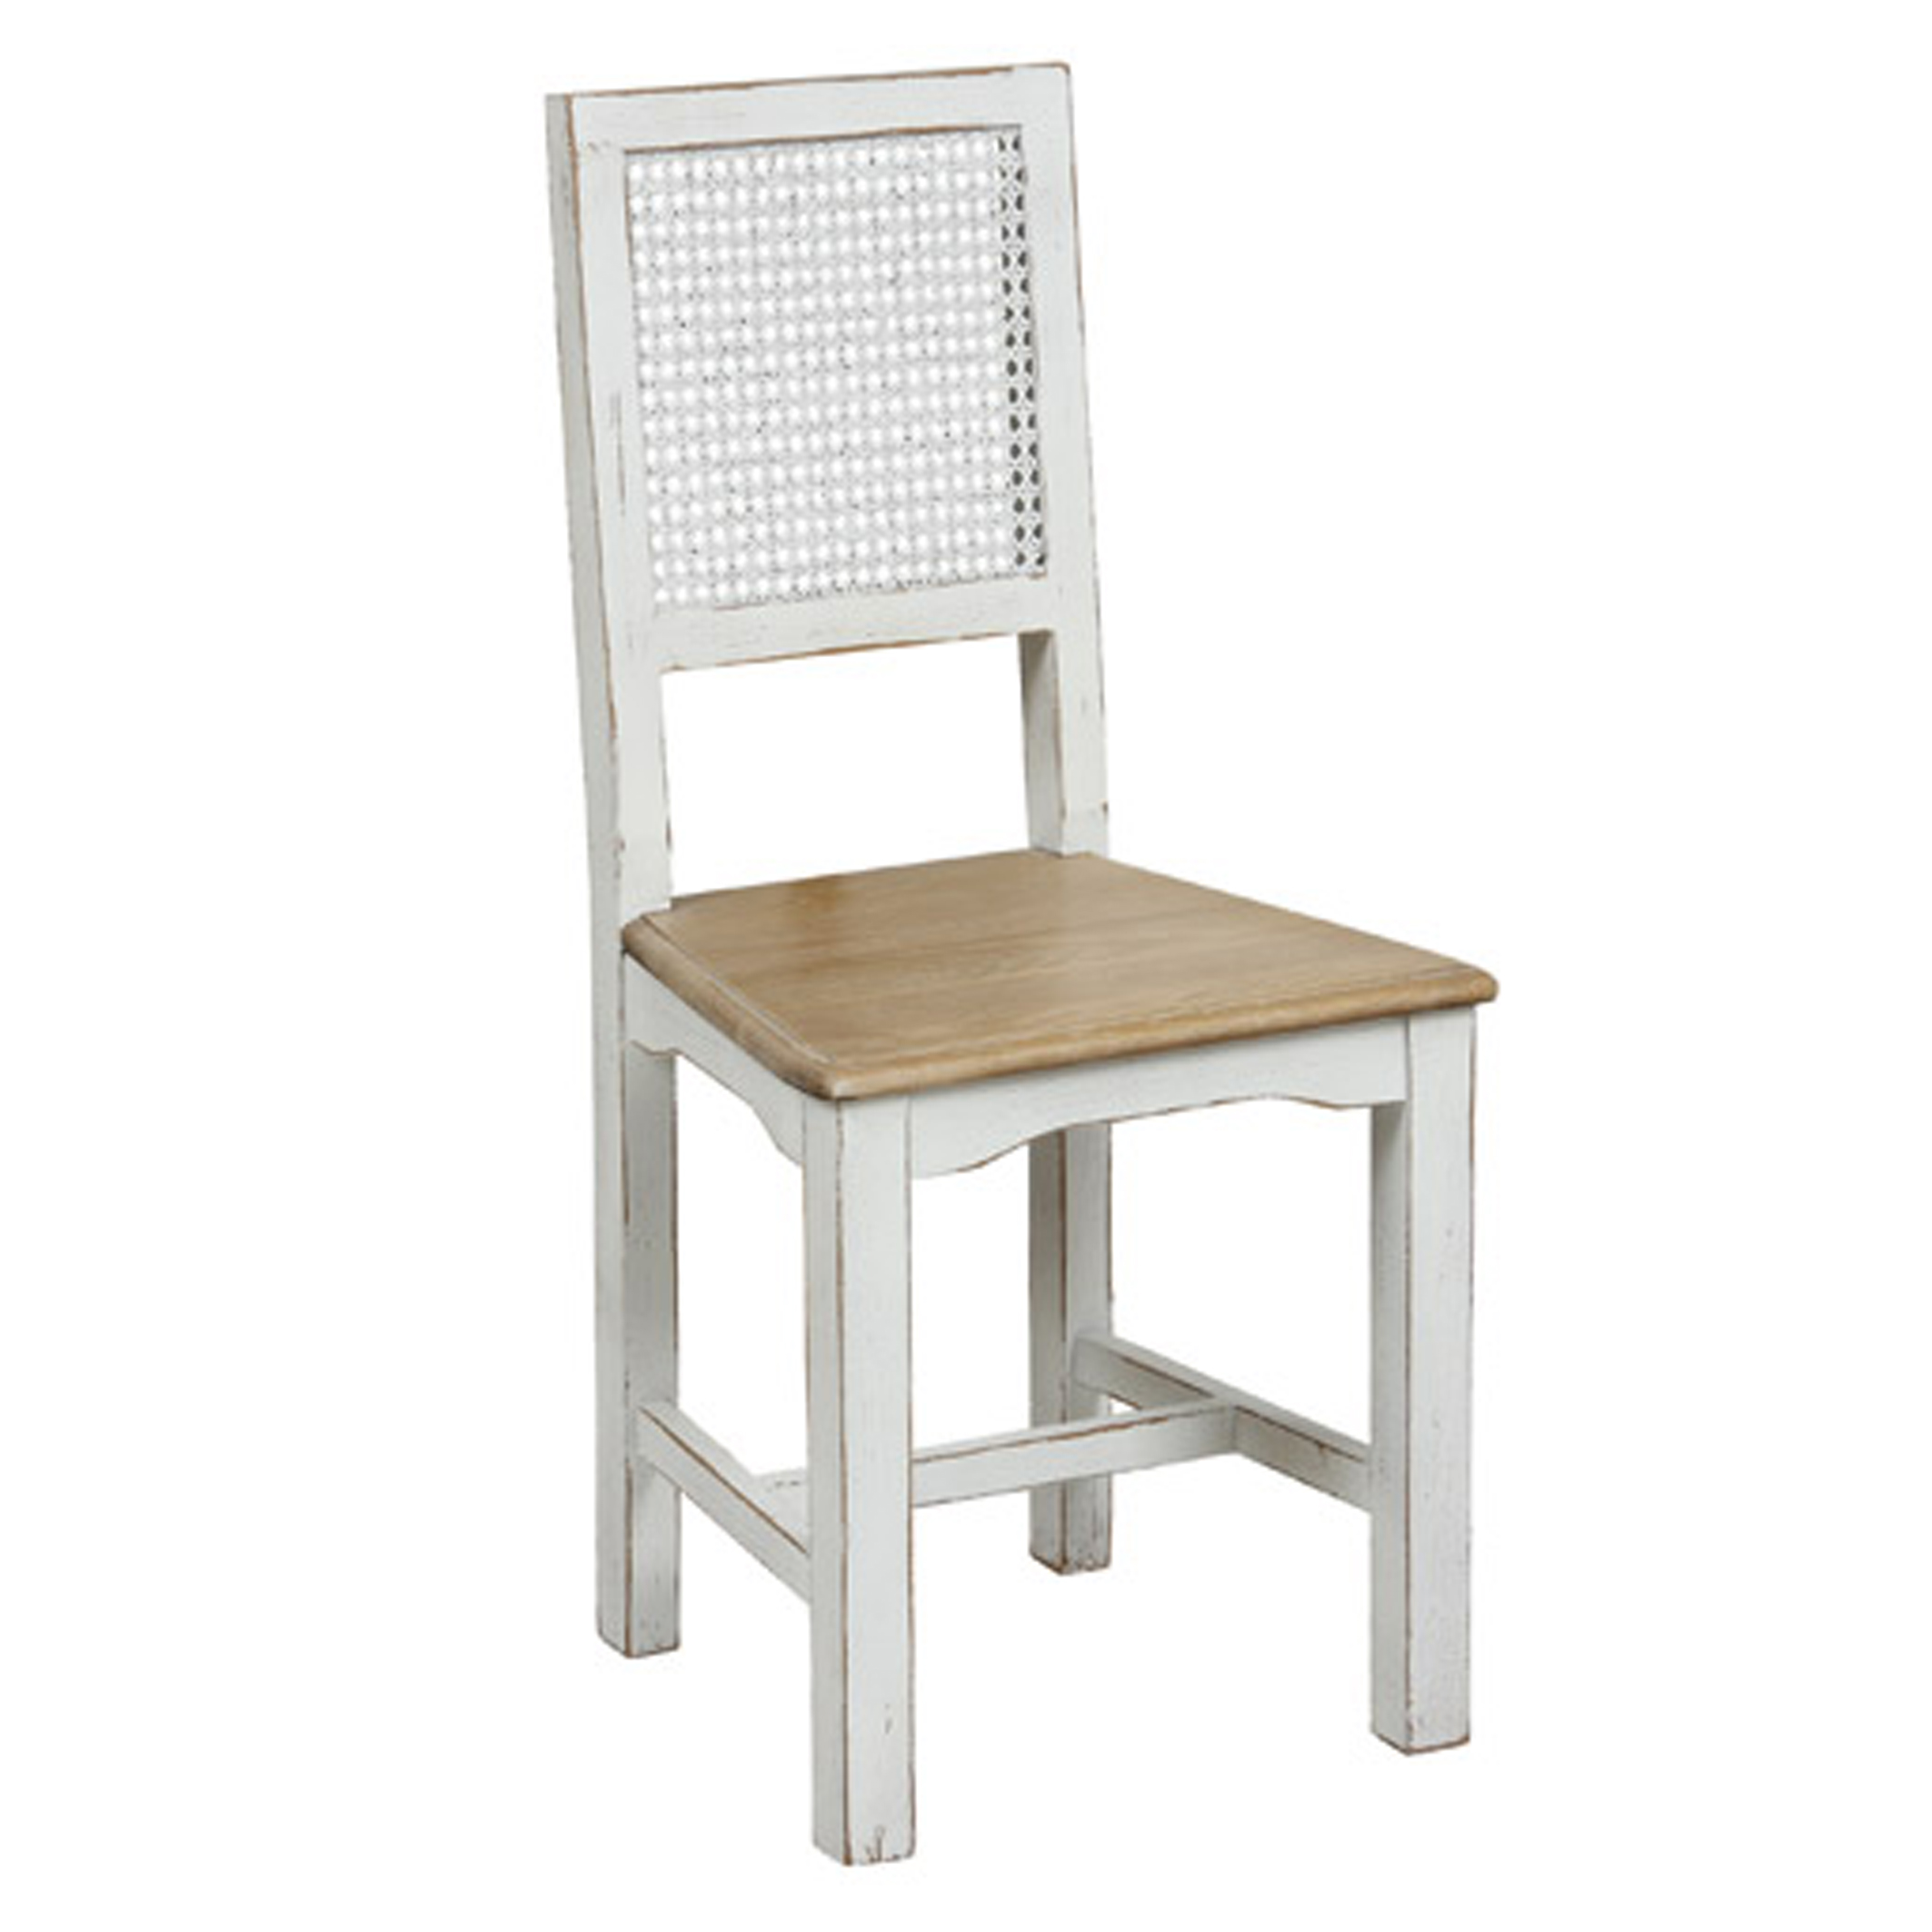 Style Campagne Chaise Esquisse Blanche Assise Bois